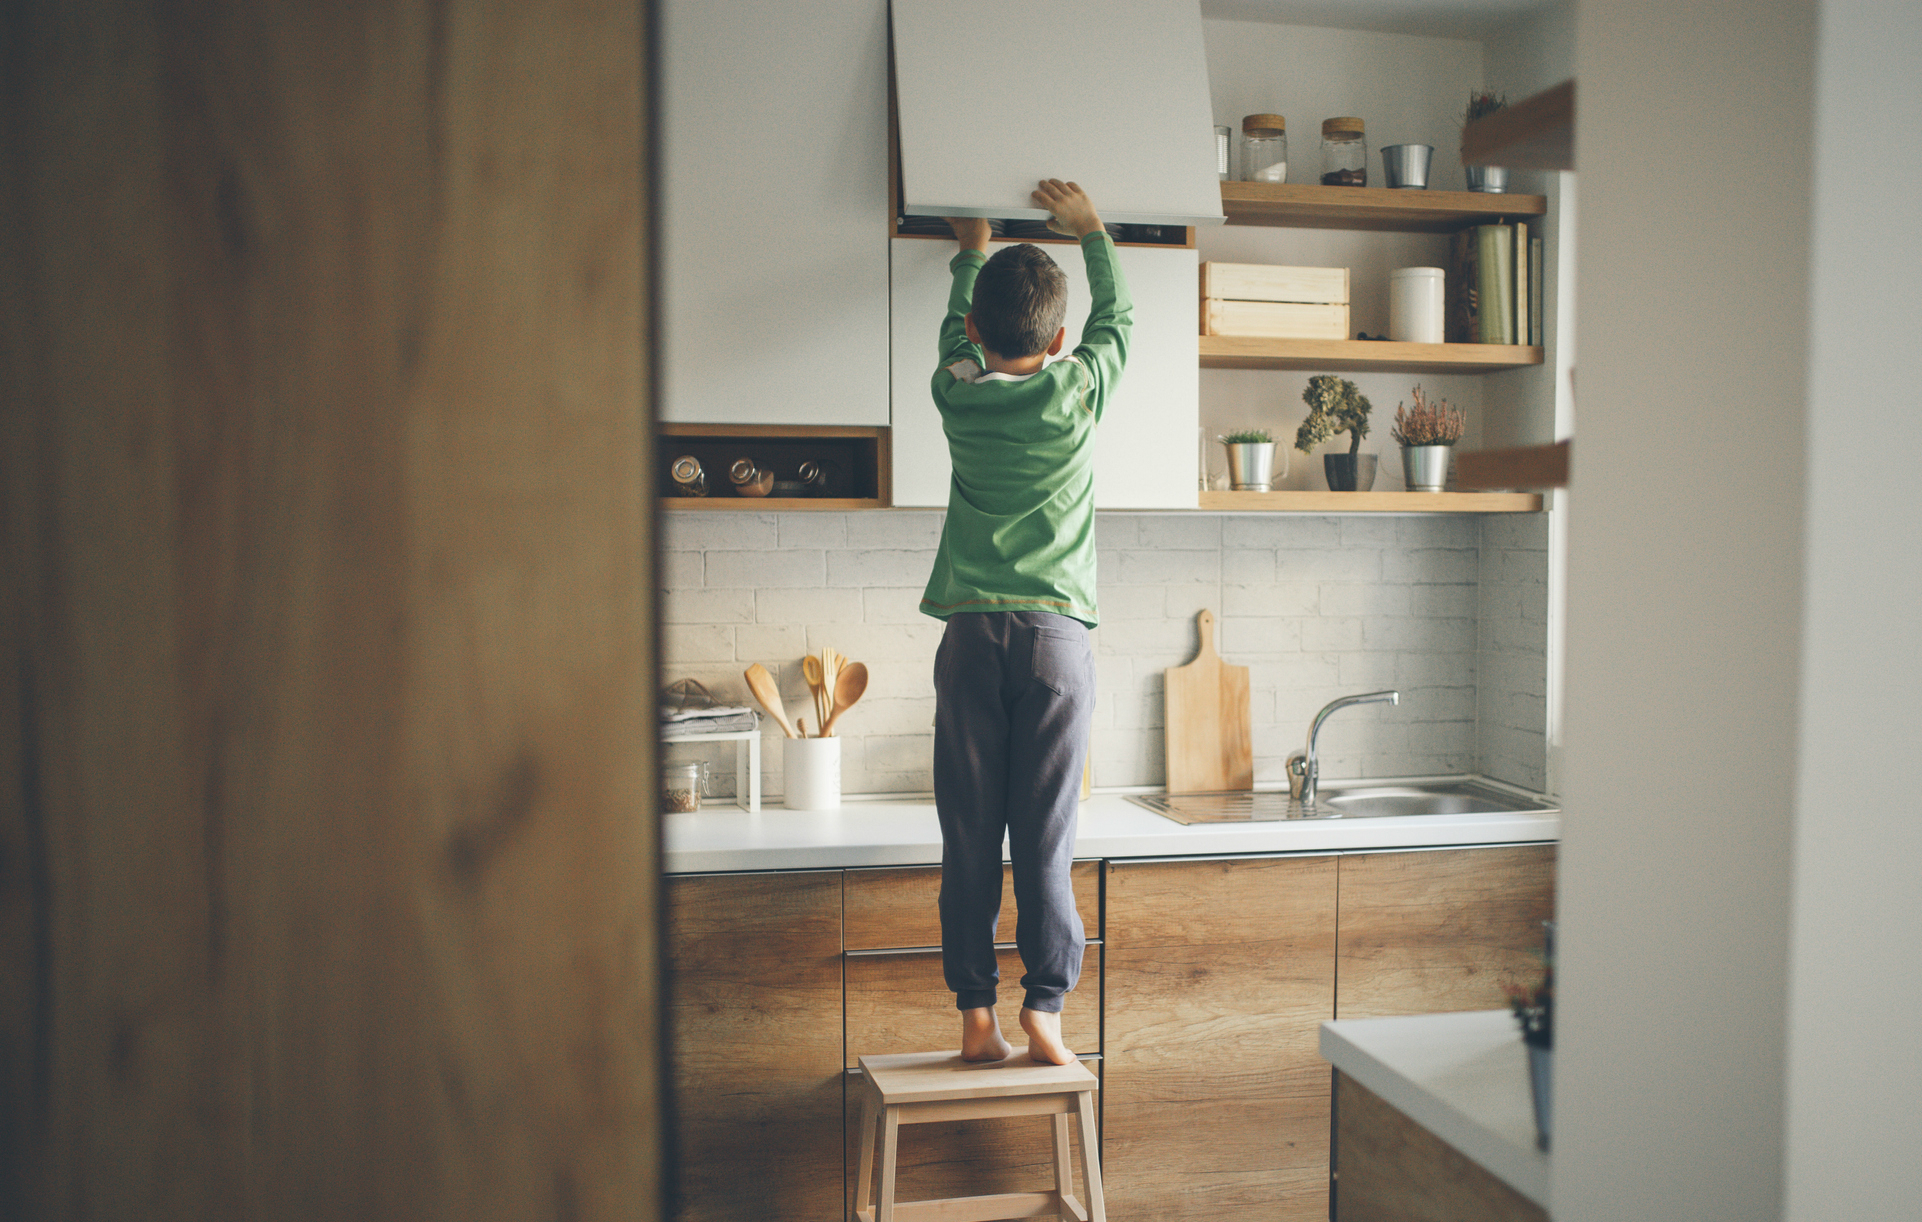 10 Surprising Health And Safety Hazards In The Home For